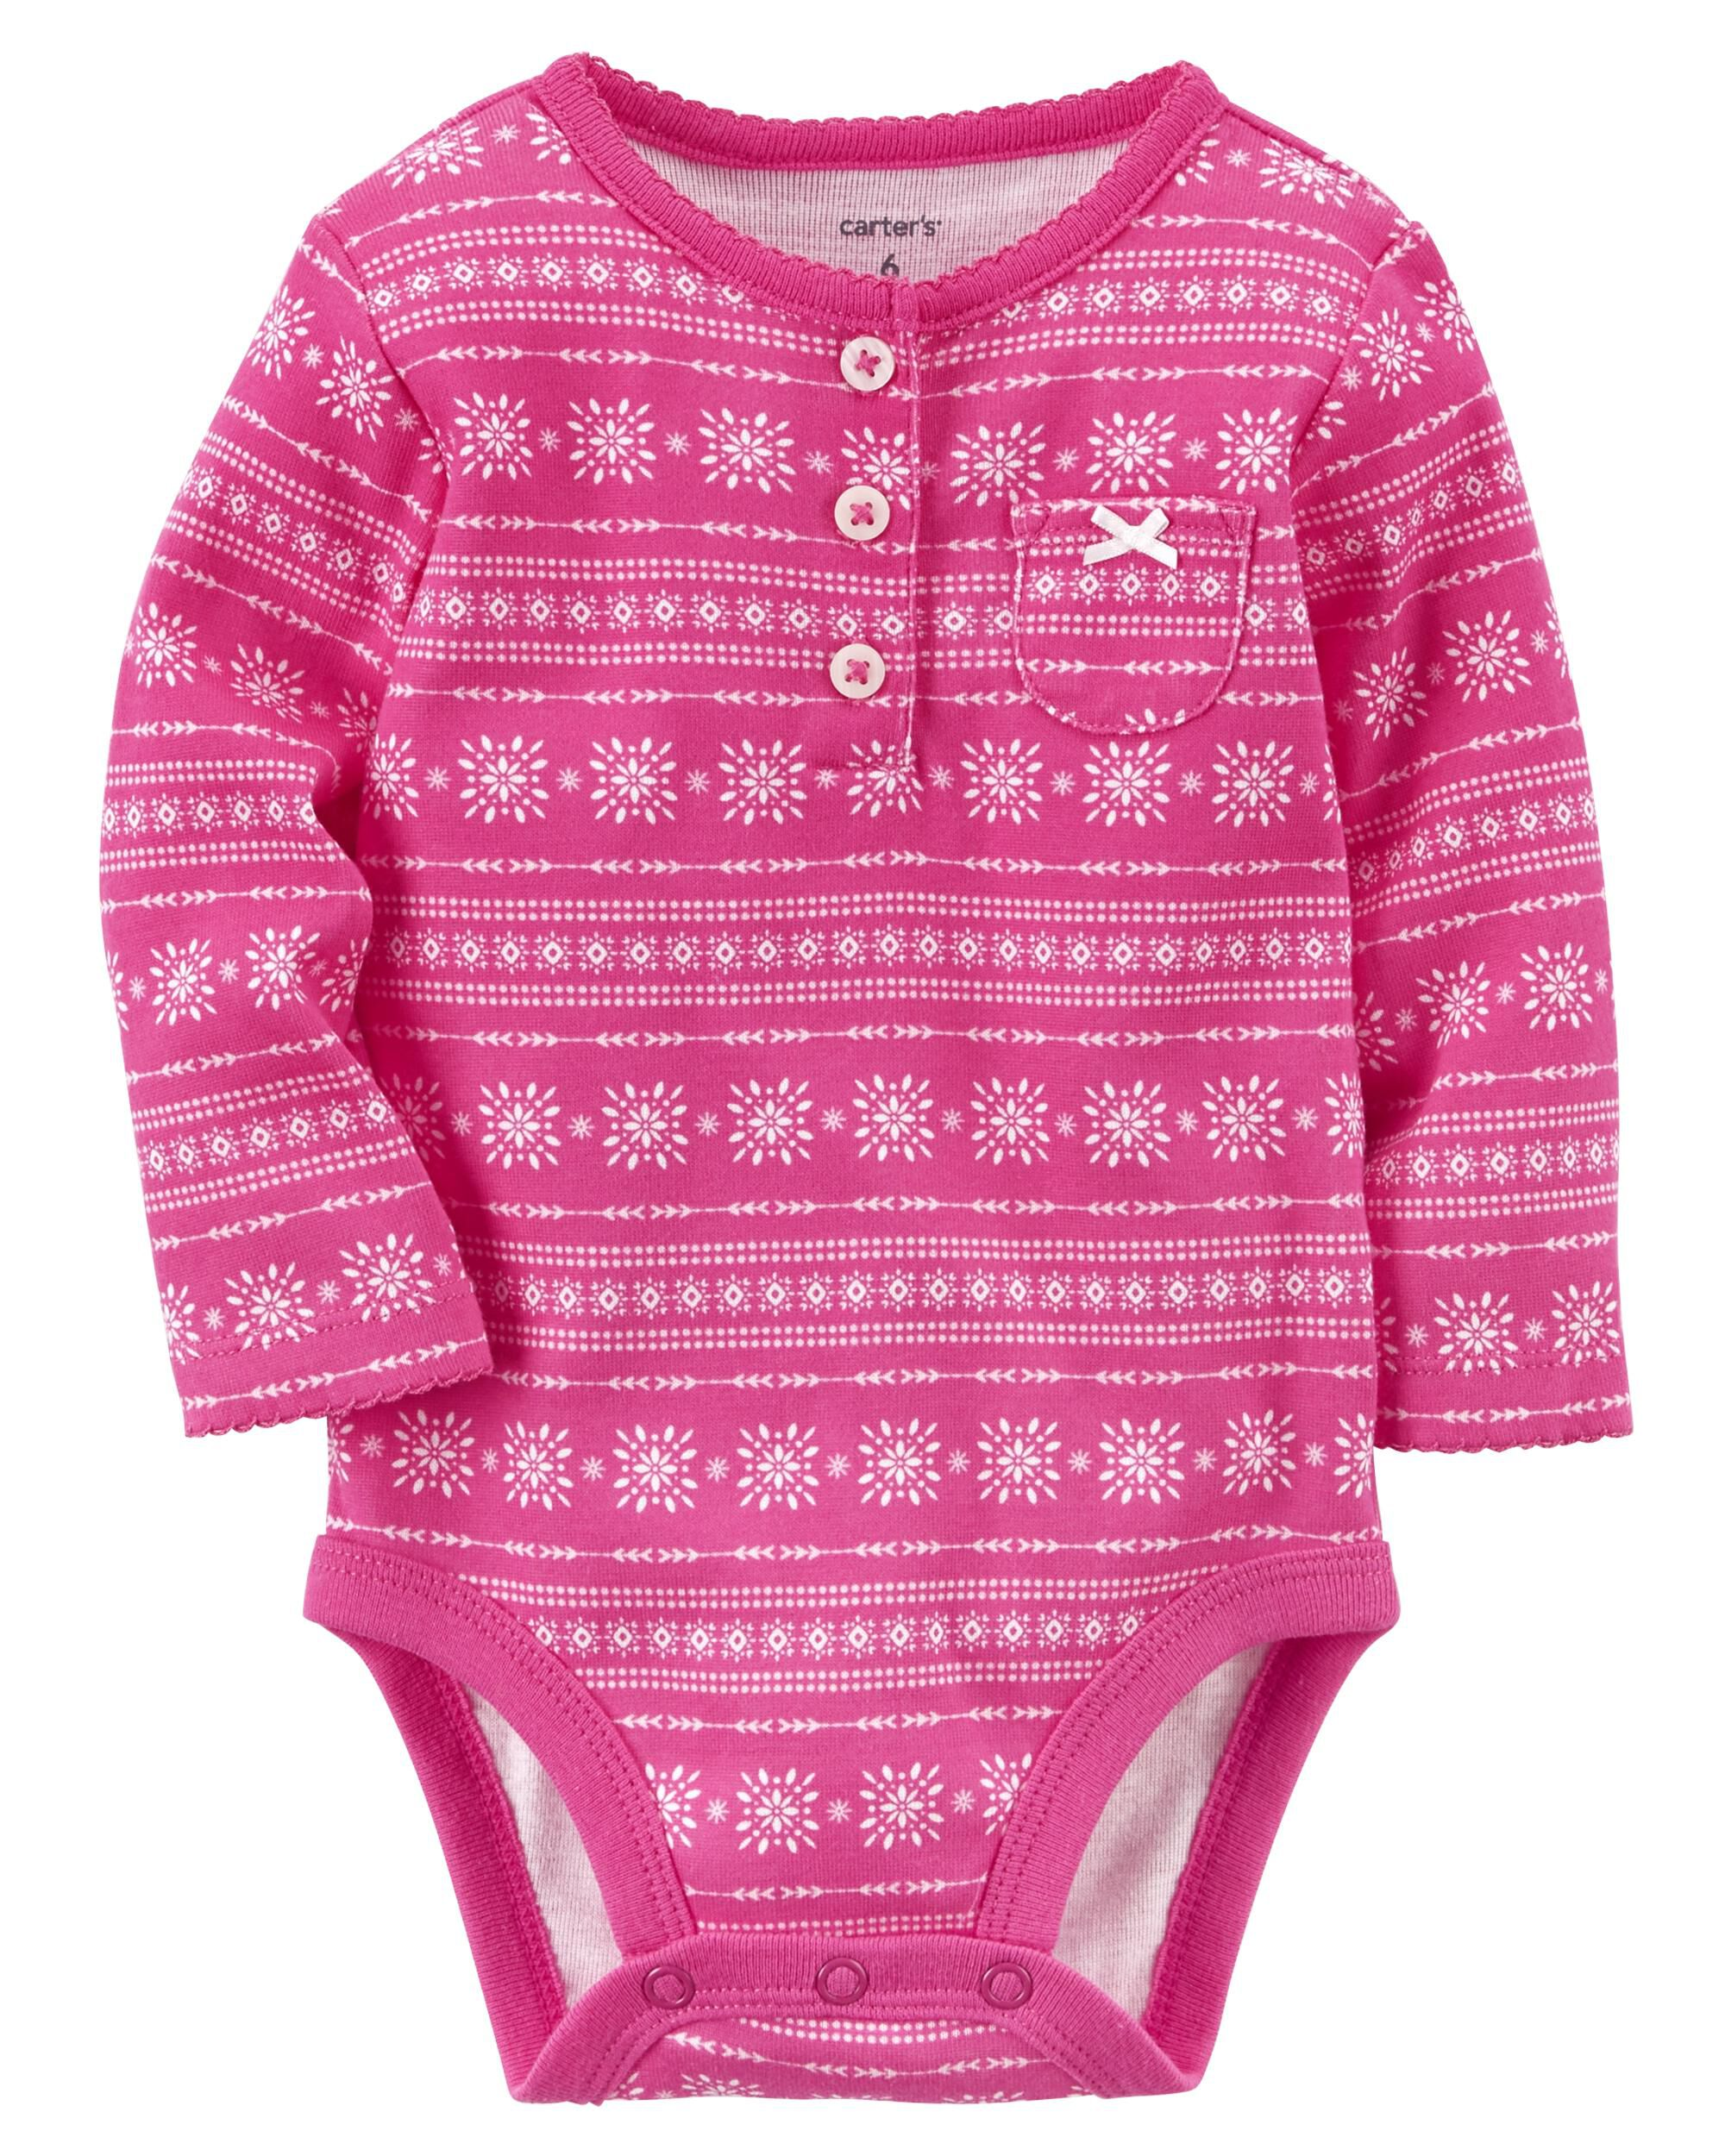 Fair Isle Collectible Bodysuit | Carters.com